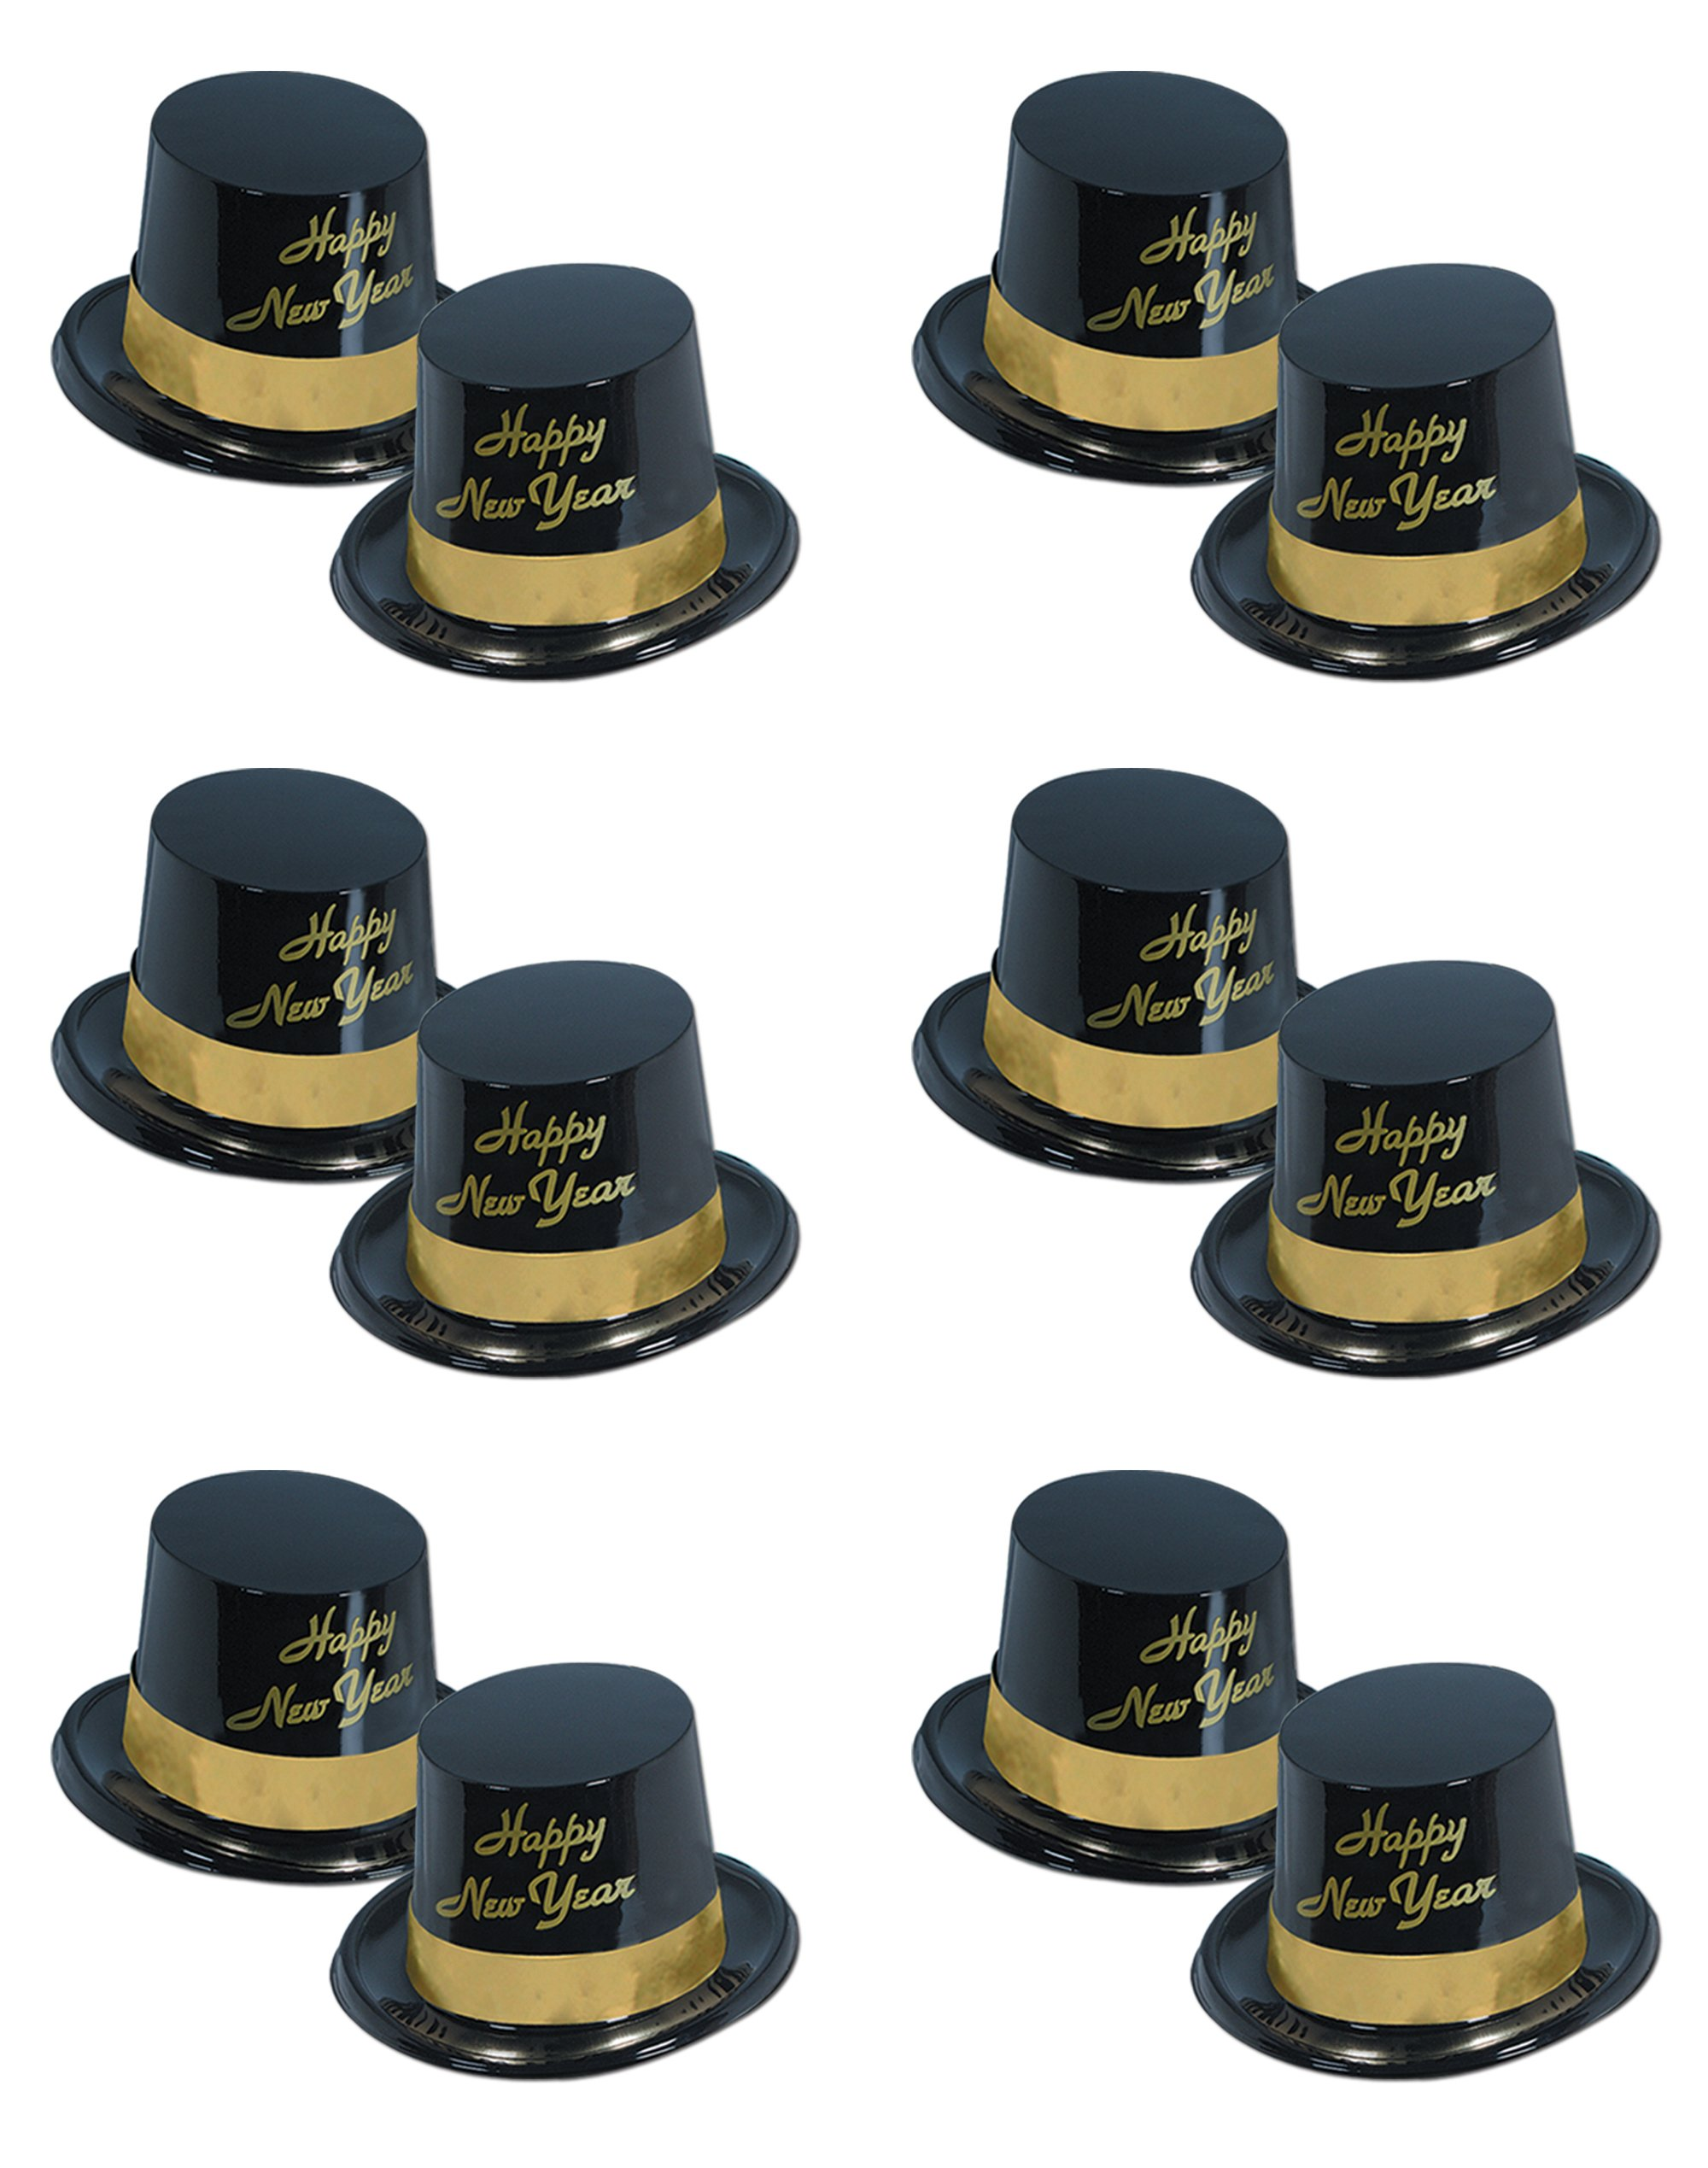 Beistle S88630-25BKAZ12 12 Piece Legacy Toppers, Black/Gold by Beistle